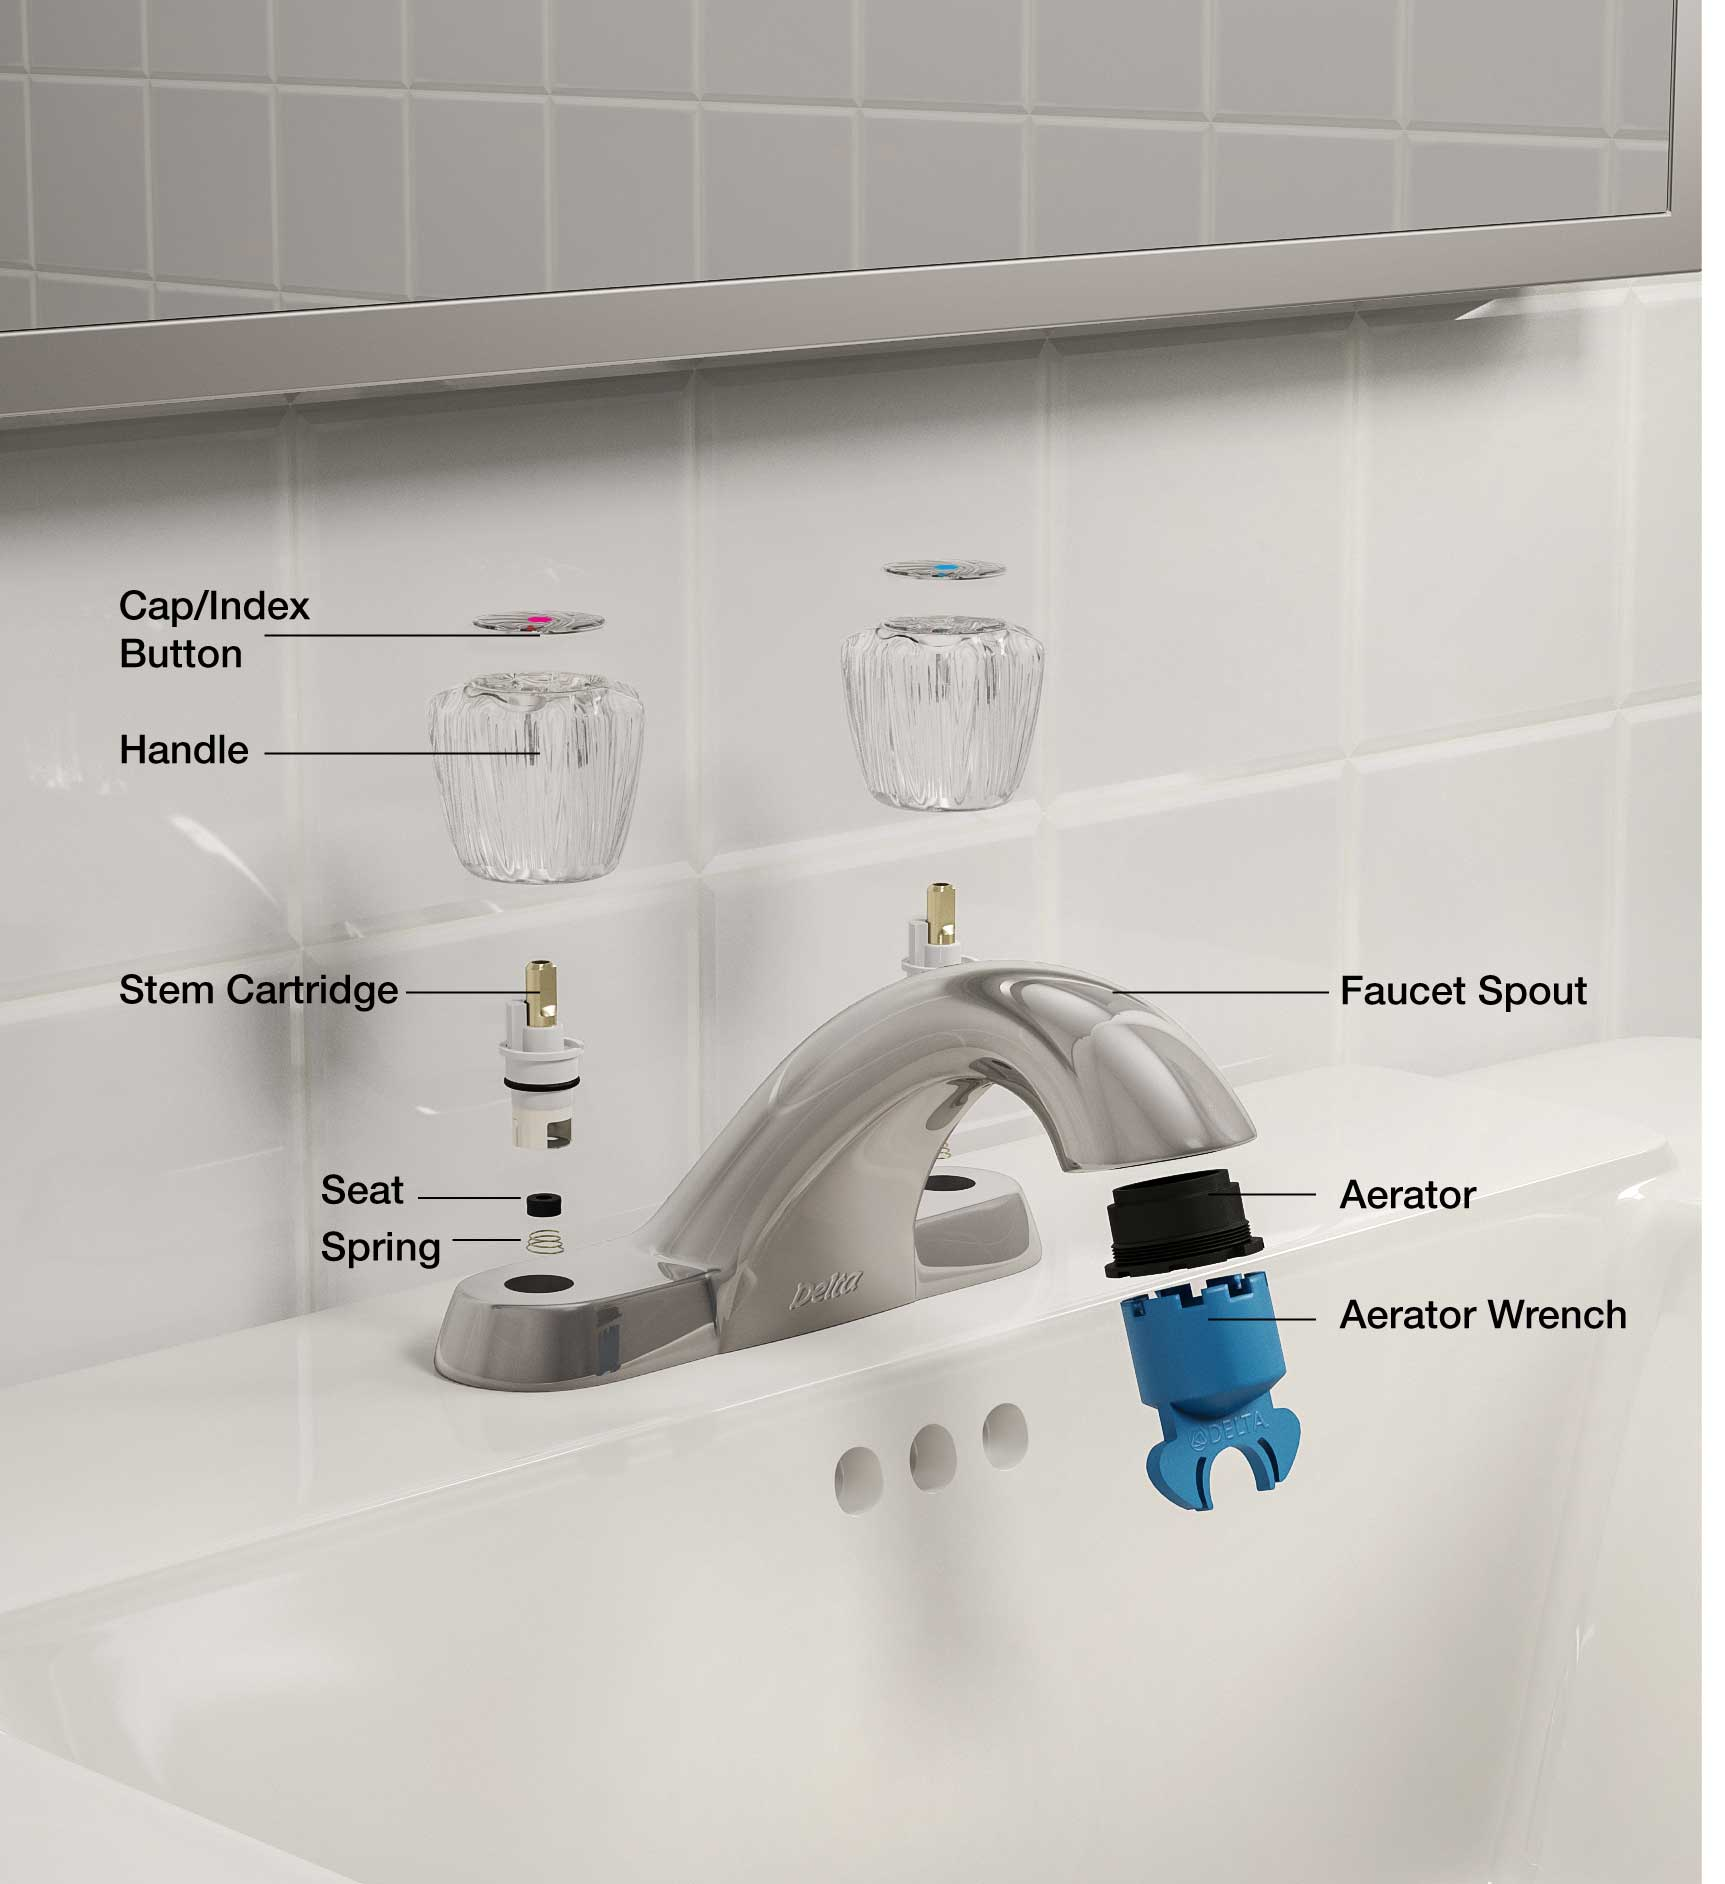 Faucet Parts & Repair Kits: Handles, Controls, & Caps